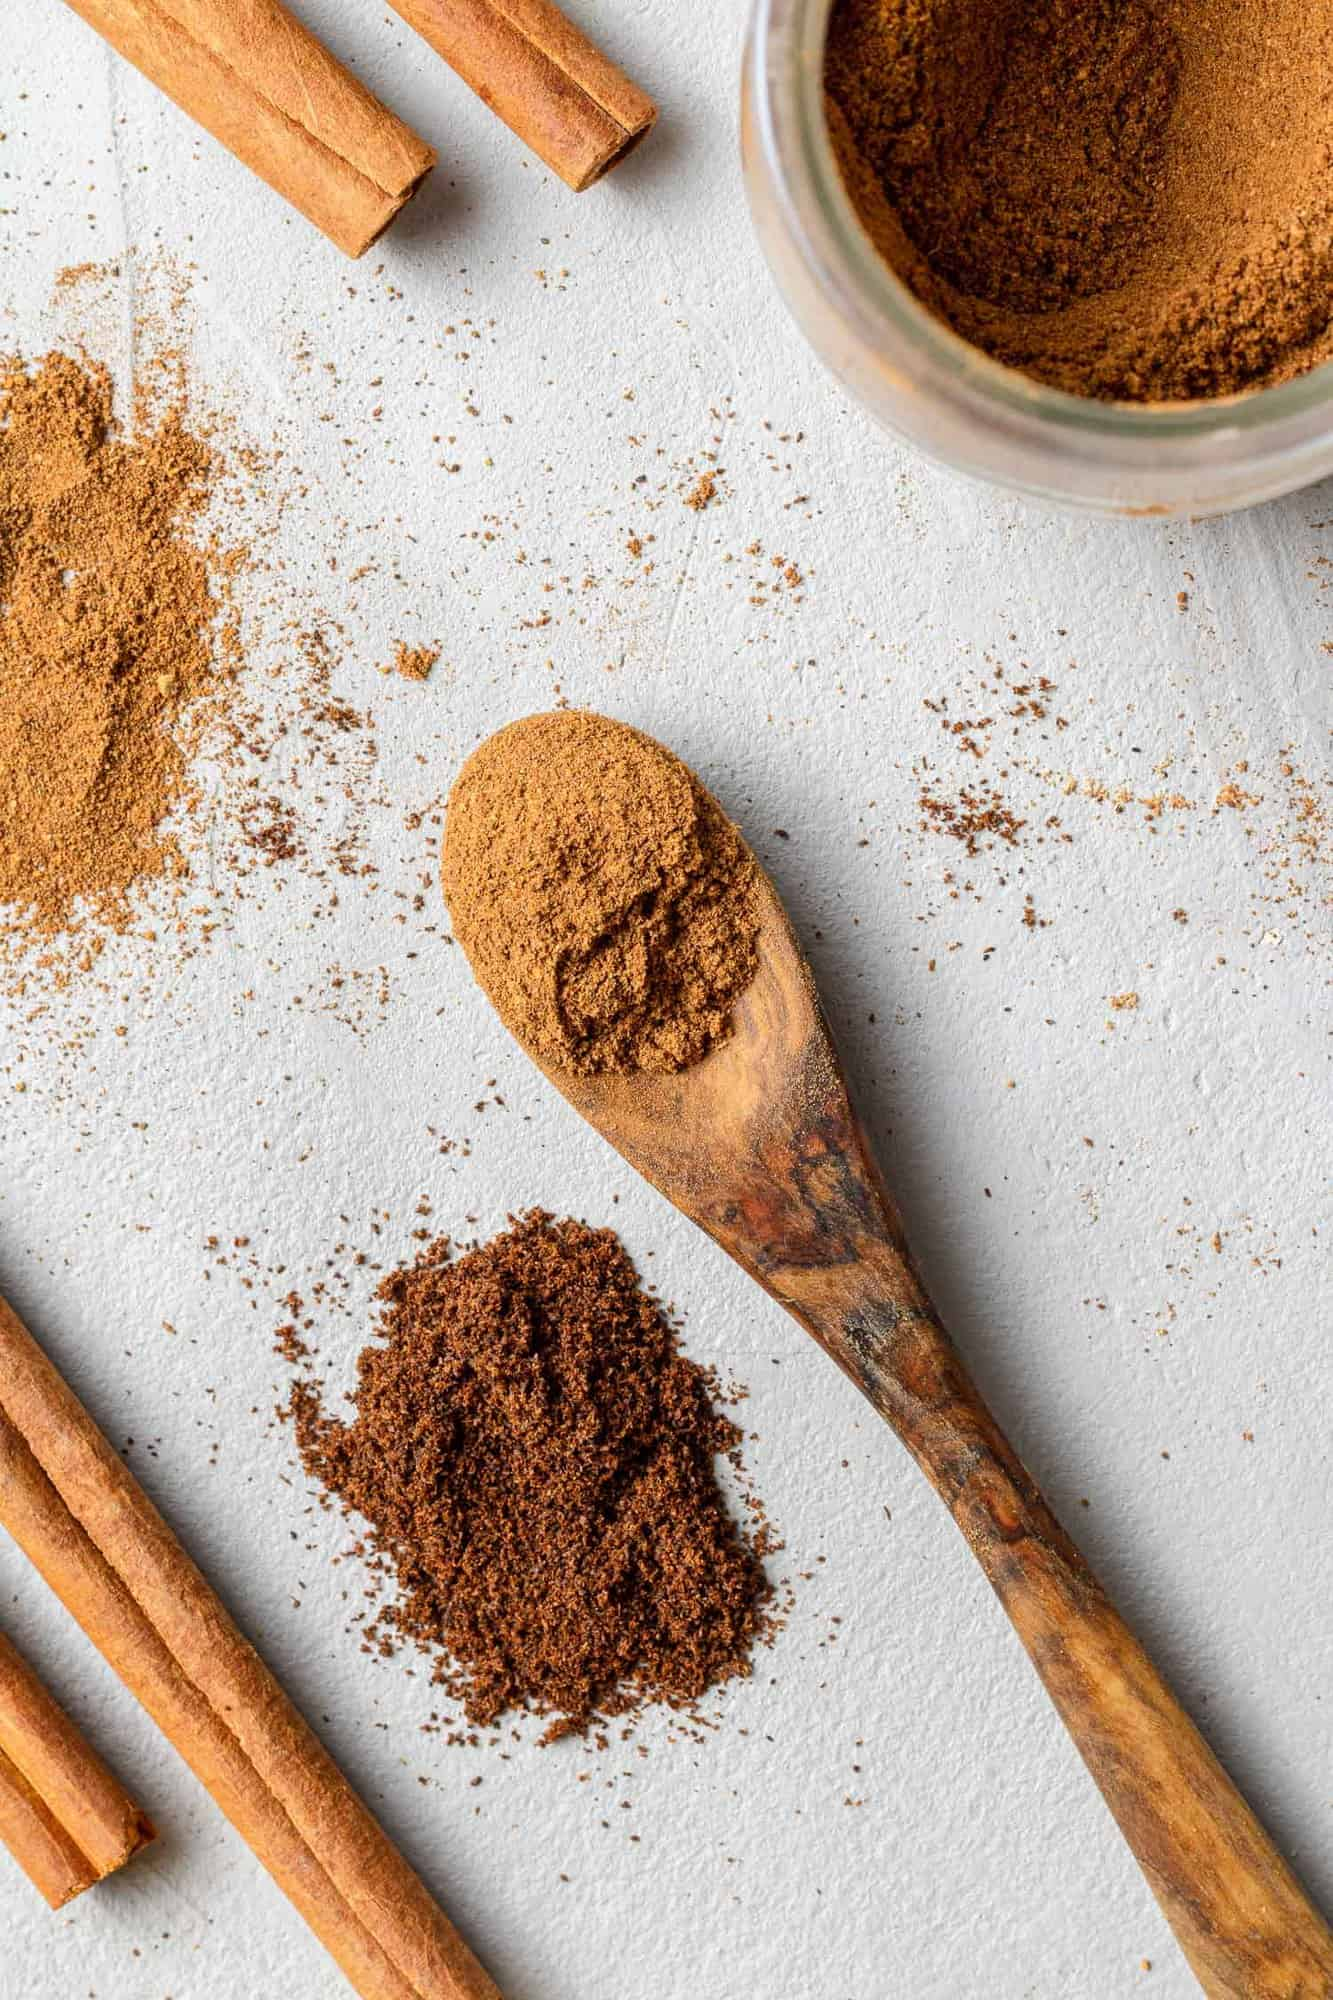 Brown spices on a tiny wooden spoon, other spices nearby.